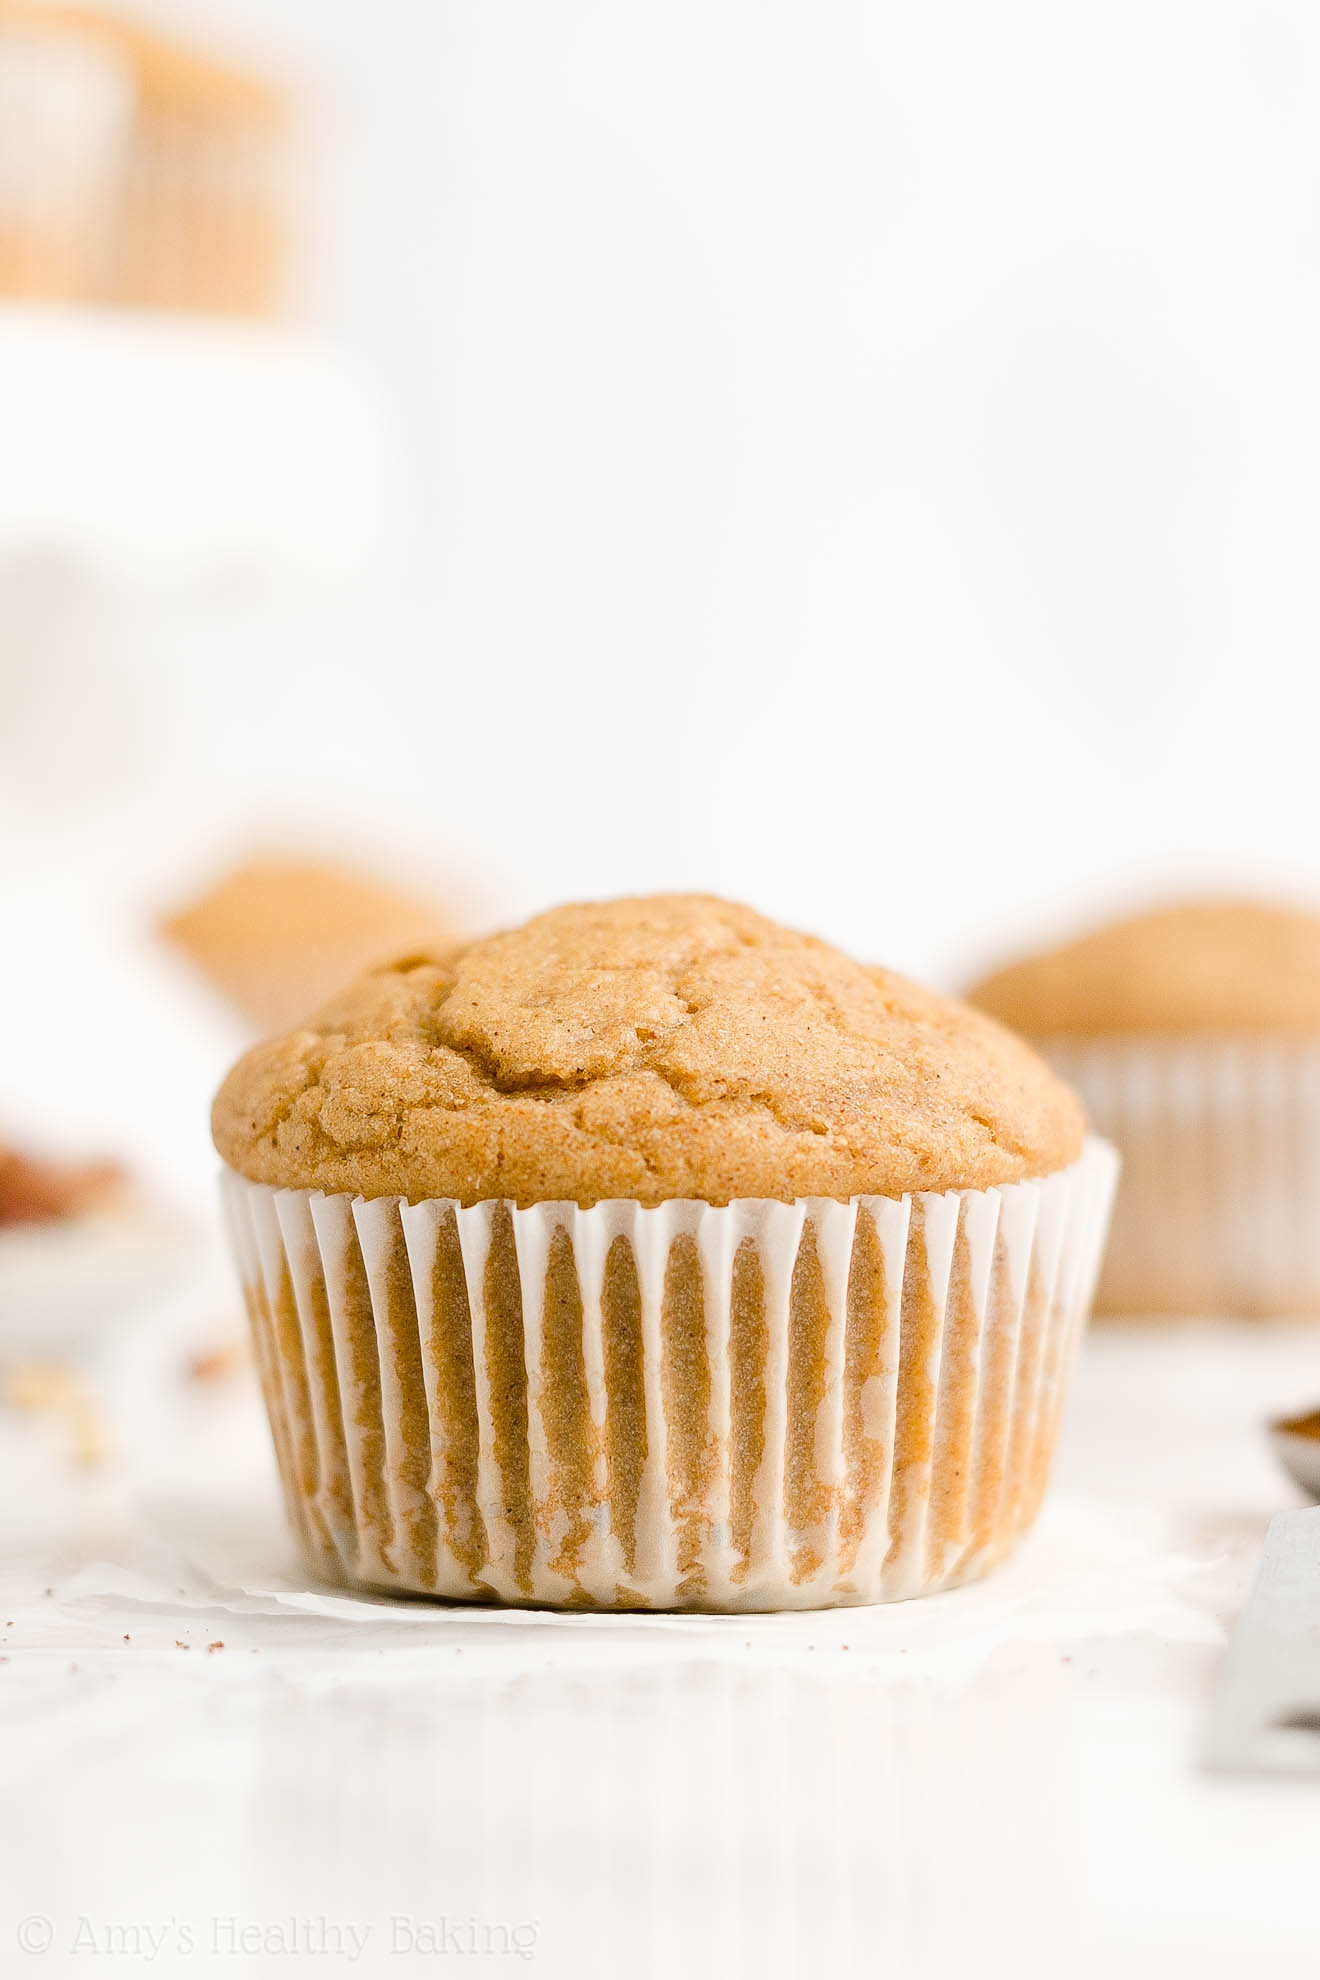 ULTIMATE Best Ever Healthy Low Fat Greek Yogurt Spiced Eggnog Muffins